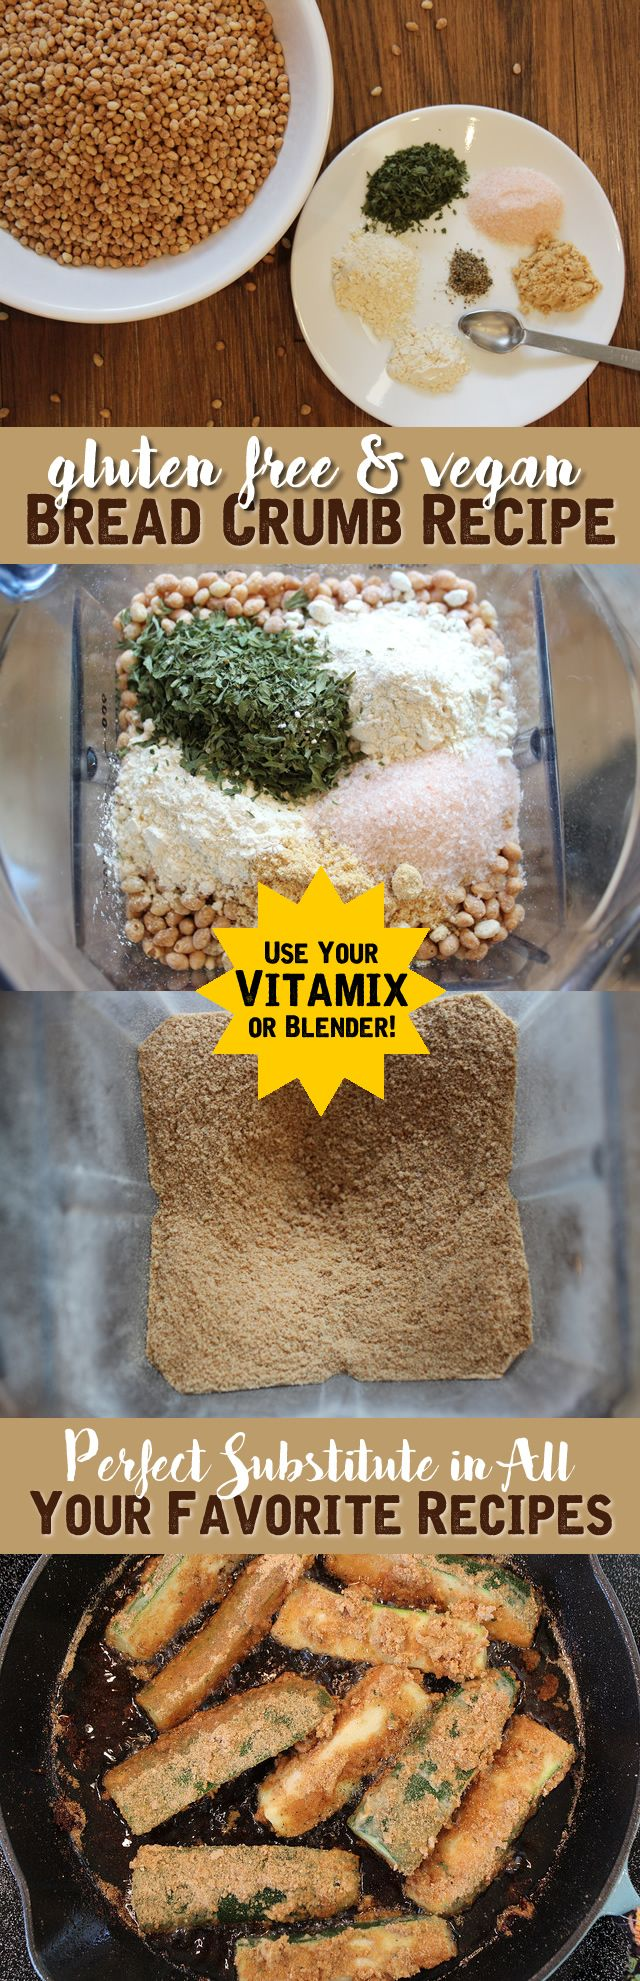 The BEST Gluten Free Breadcrumb Recipe - Use it in all your favorite recipes. #glutenfree #vegan #breadcrumbs #recipe #vitamix #enjoylifefoods #cleaneating